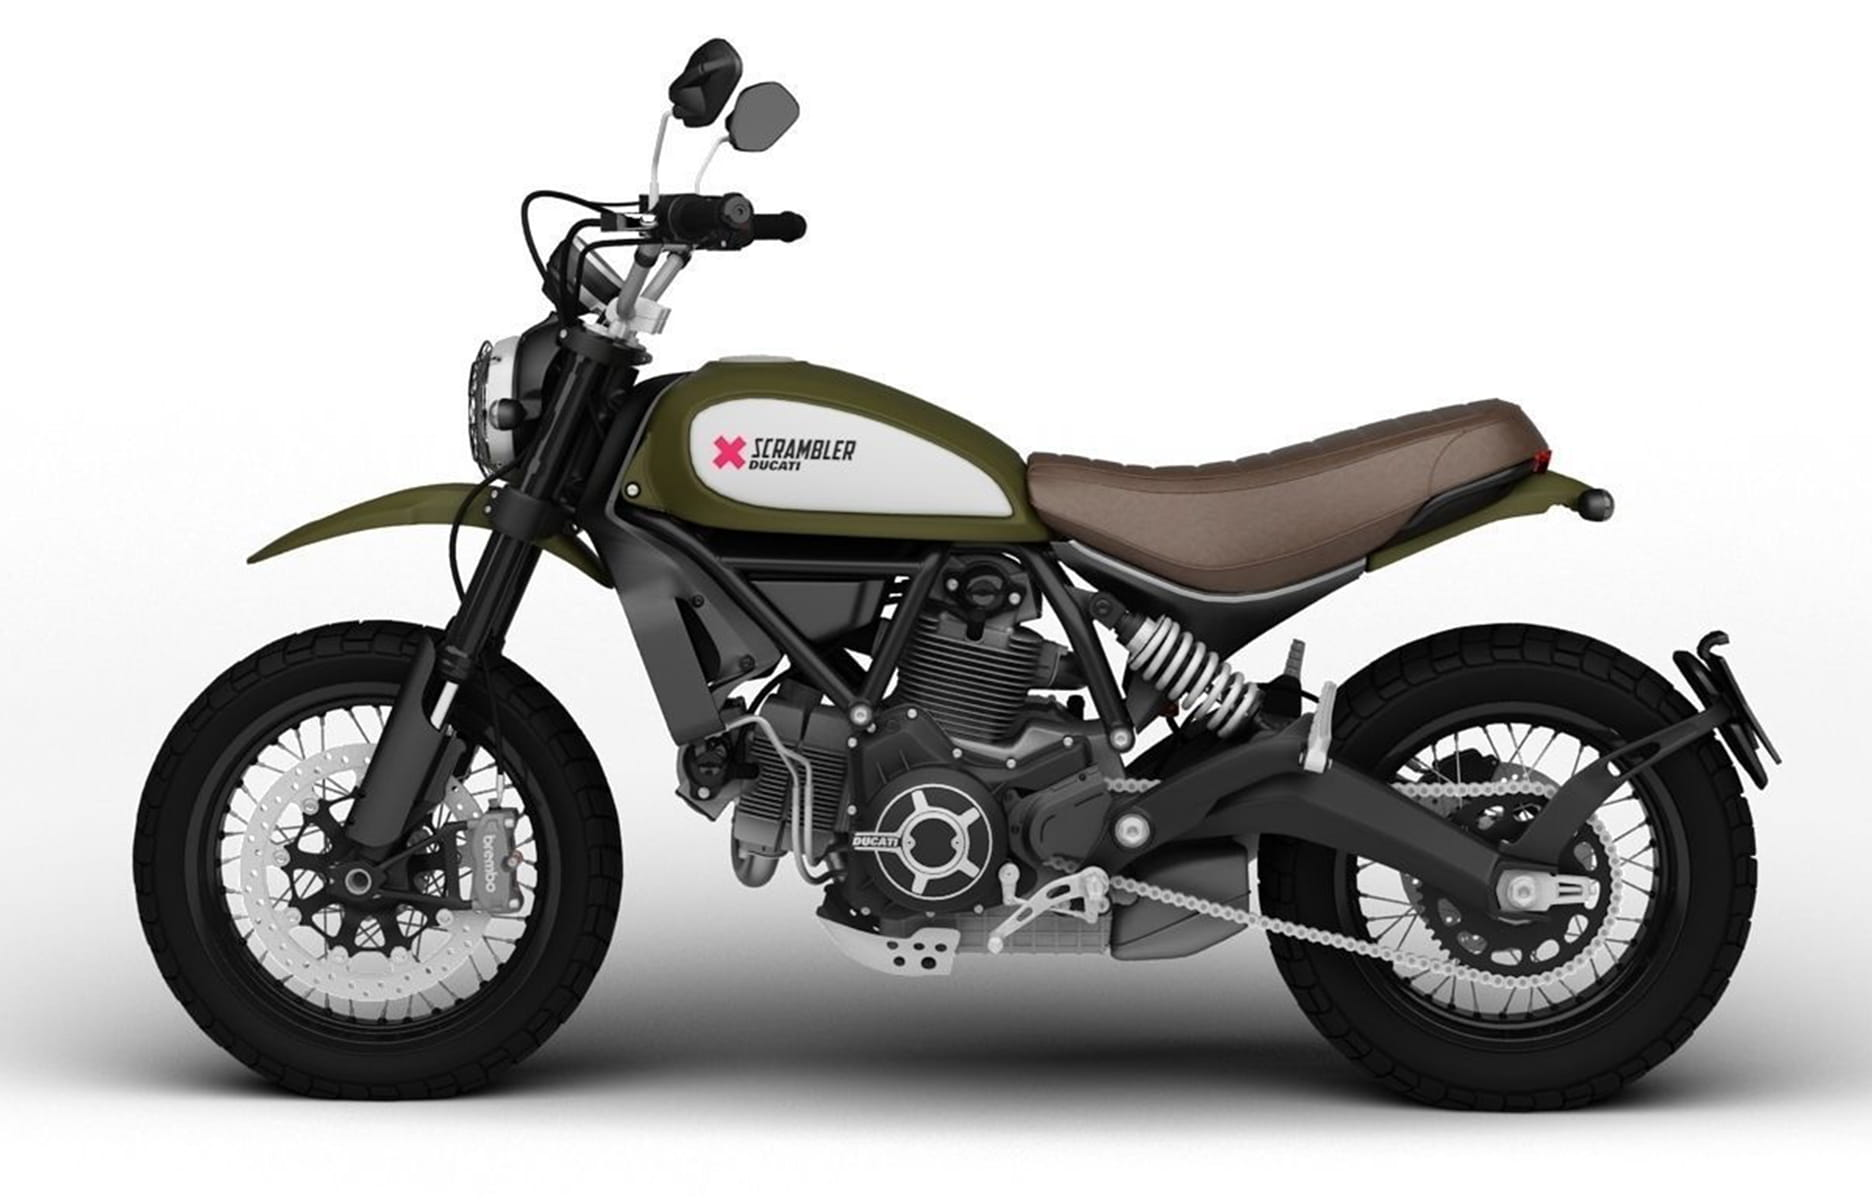 motos vintage 1 5 la ducati scrambler tout terrain. Black Bedroom Furniture Sets. Home Design Ideas